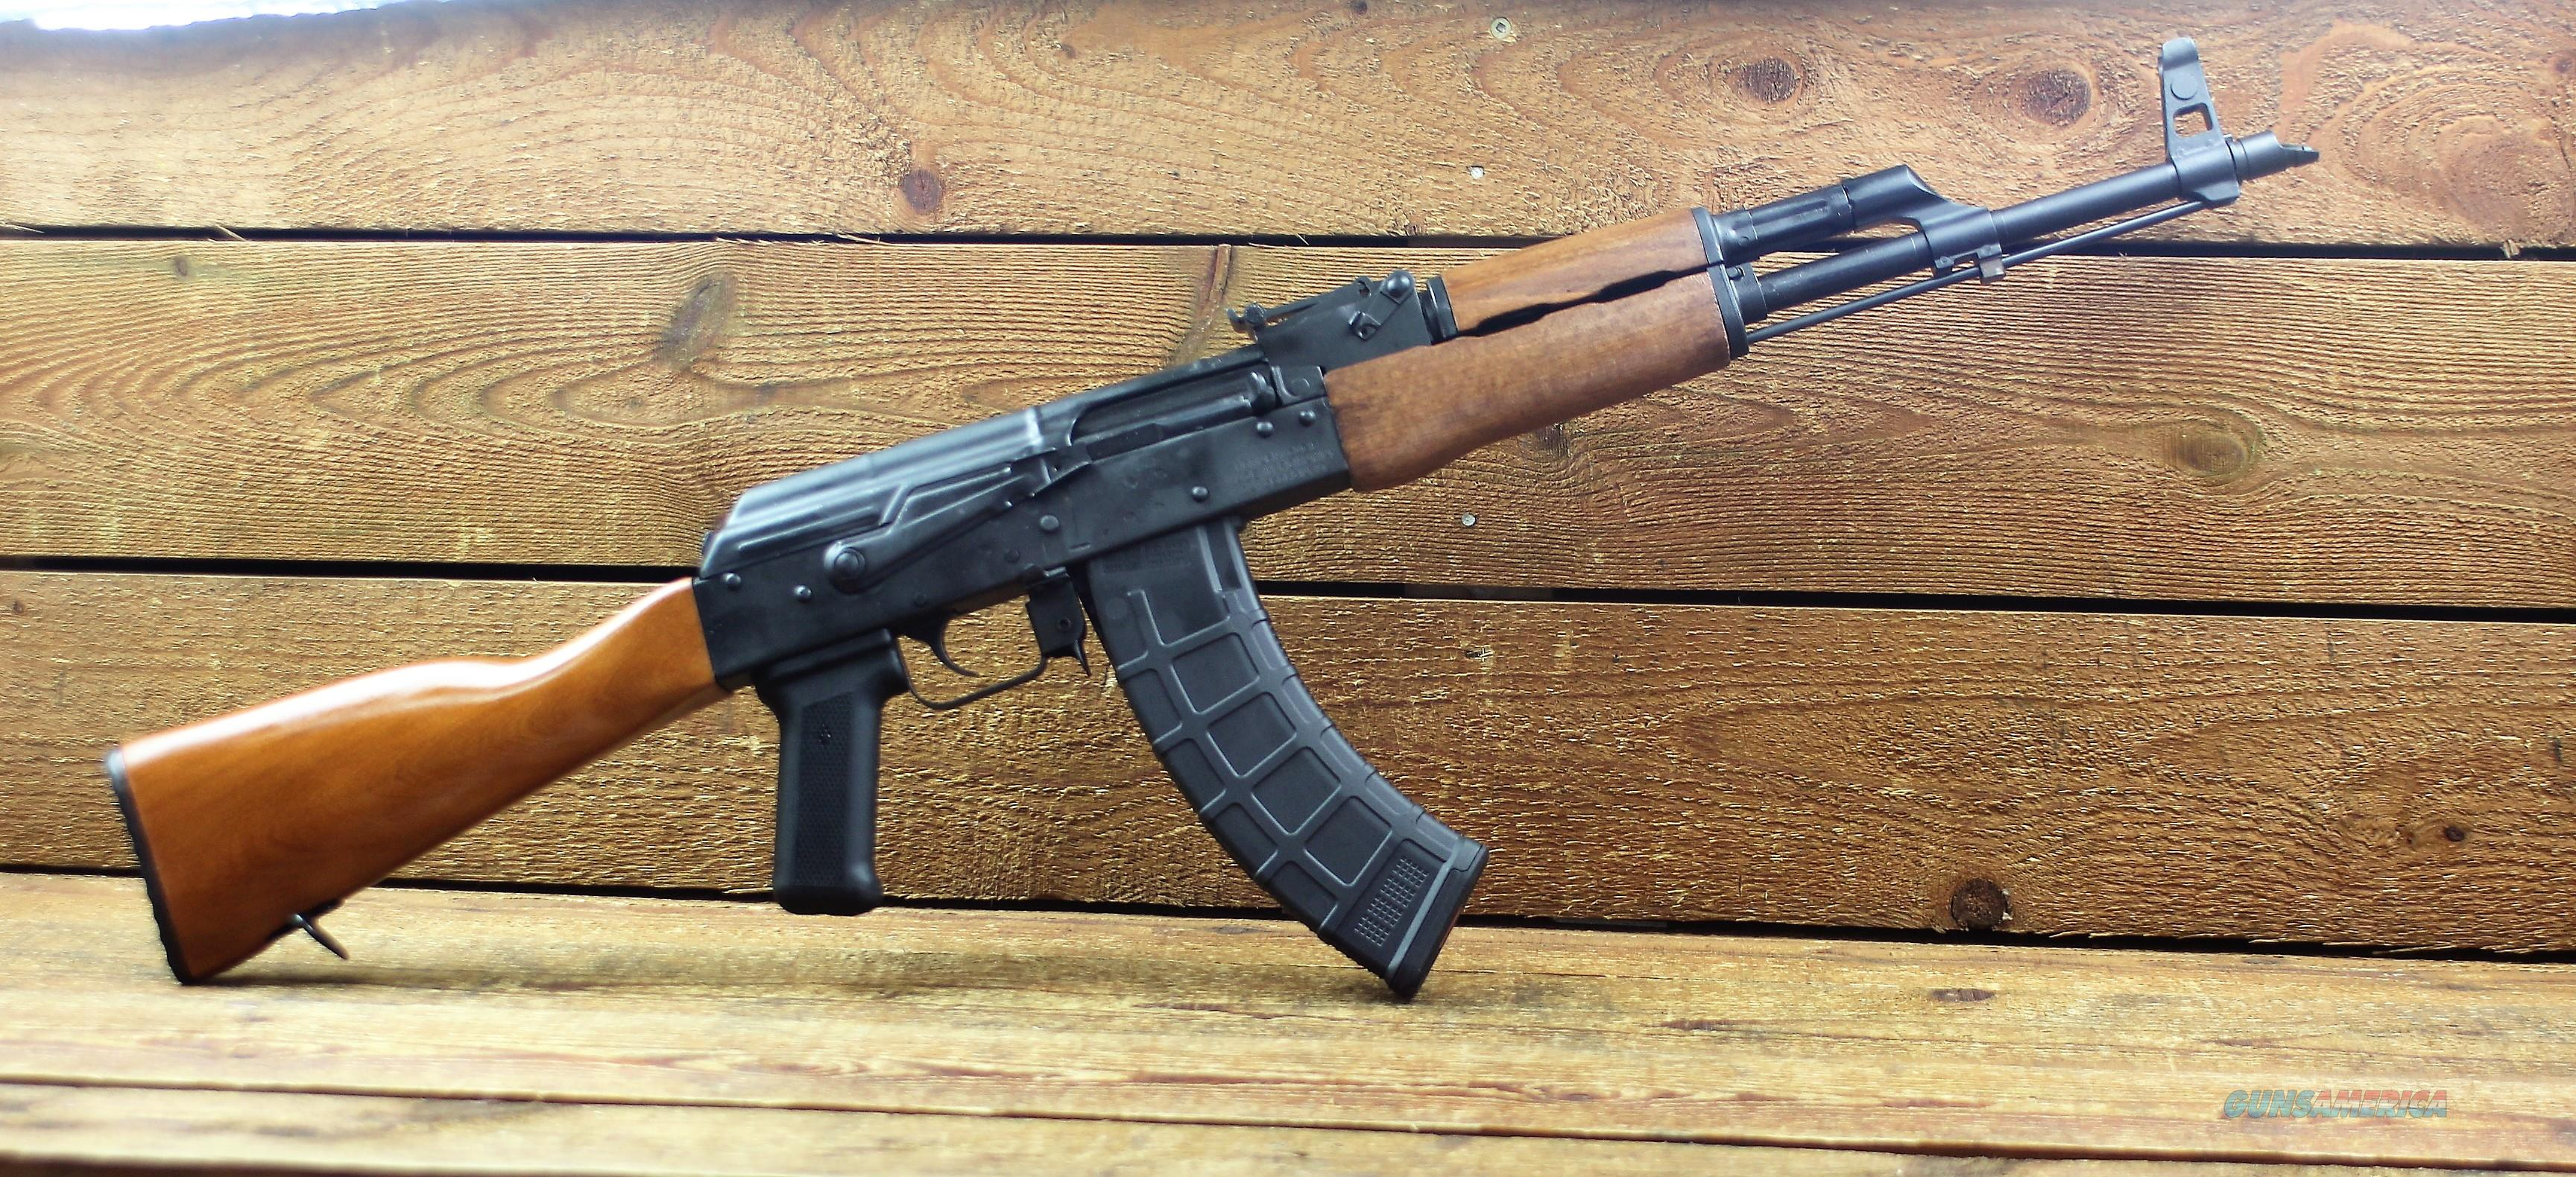 "EASY PAY $73 DOWN LAYAWAY 12 MONTHLY PAYMENTS C I A Romanian military model Romy G Century International GP WASR-10 Stamped receiver Chrome lined 16.25"" Barrel Ak-47 Ak47 7.62x39mm 30 Rounds Wood Stock Side Scope Rail RI1805N  Guns > Rifles > AK-47 Rifles (and copies) > Full Stock"